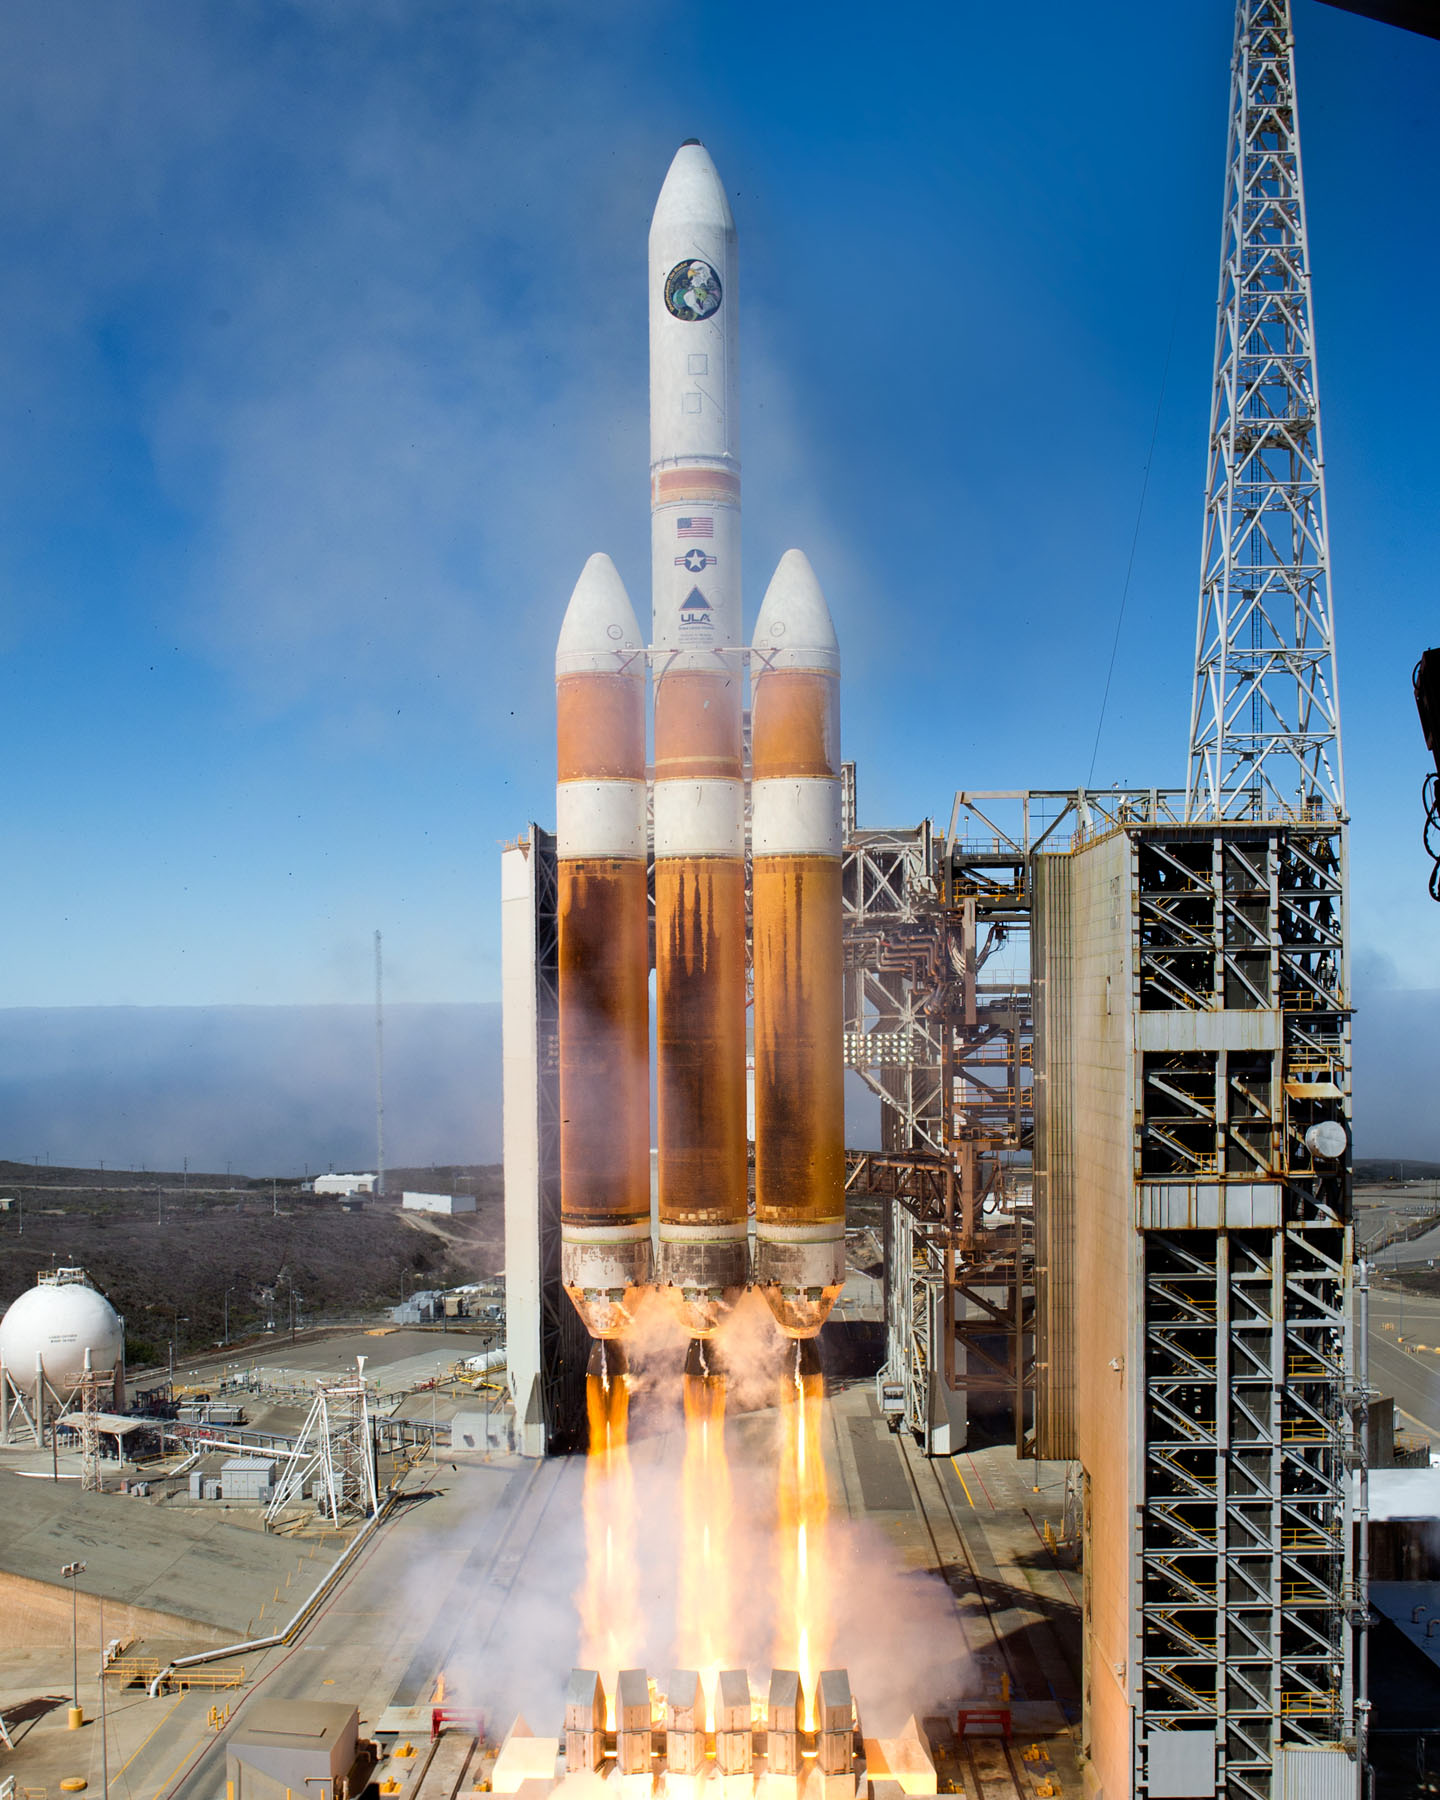 Delta 4 Heavy Rocket Takes Off